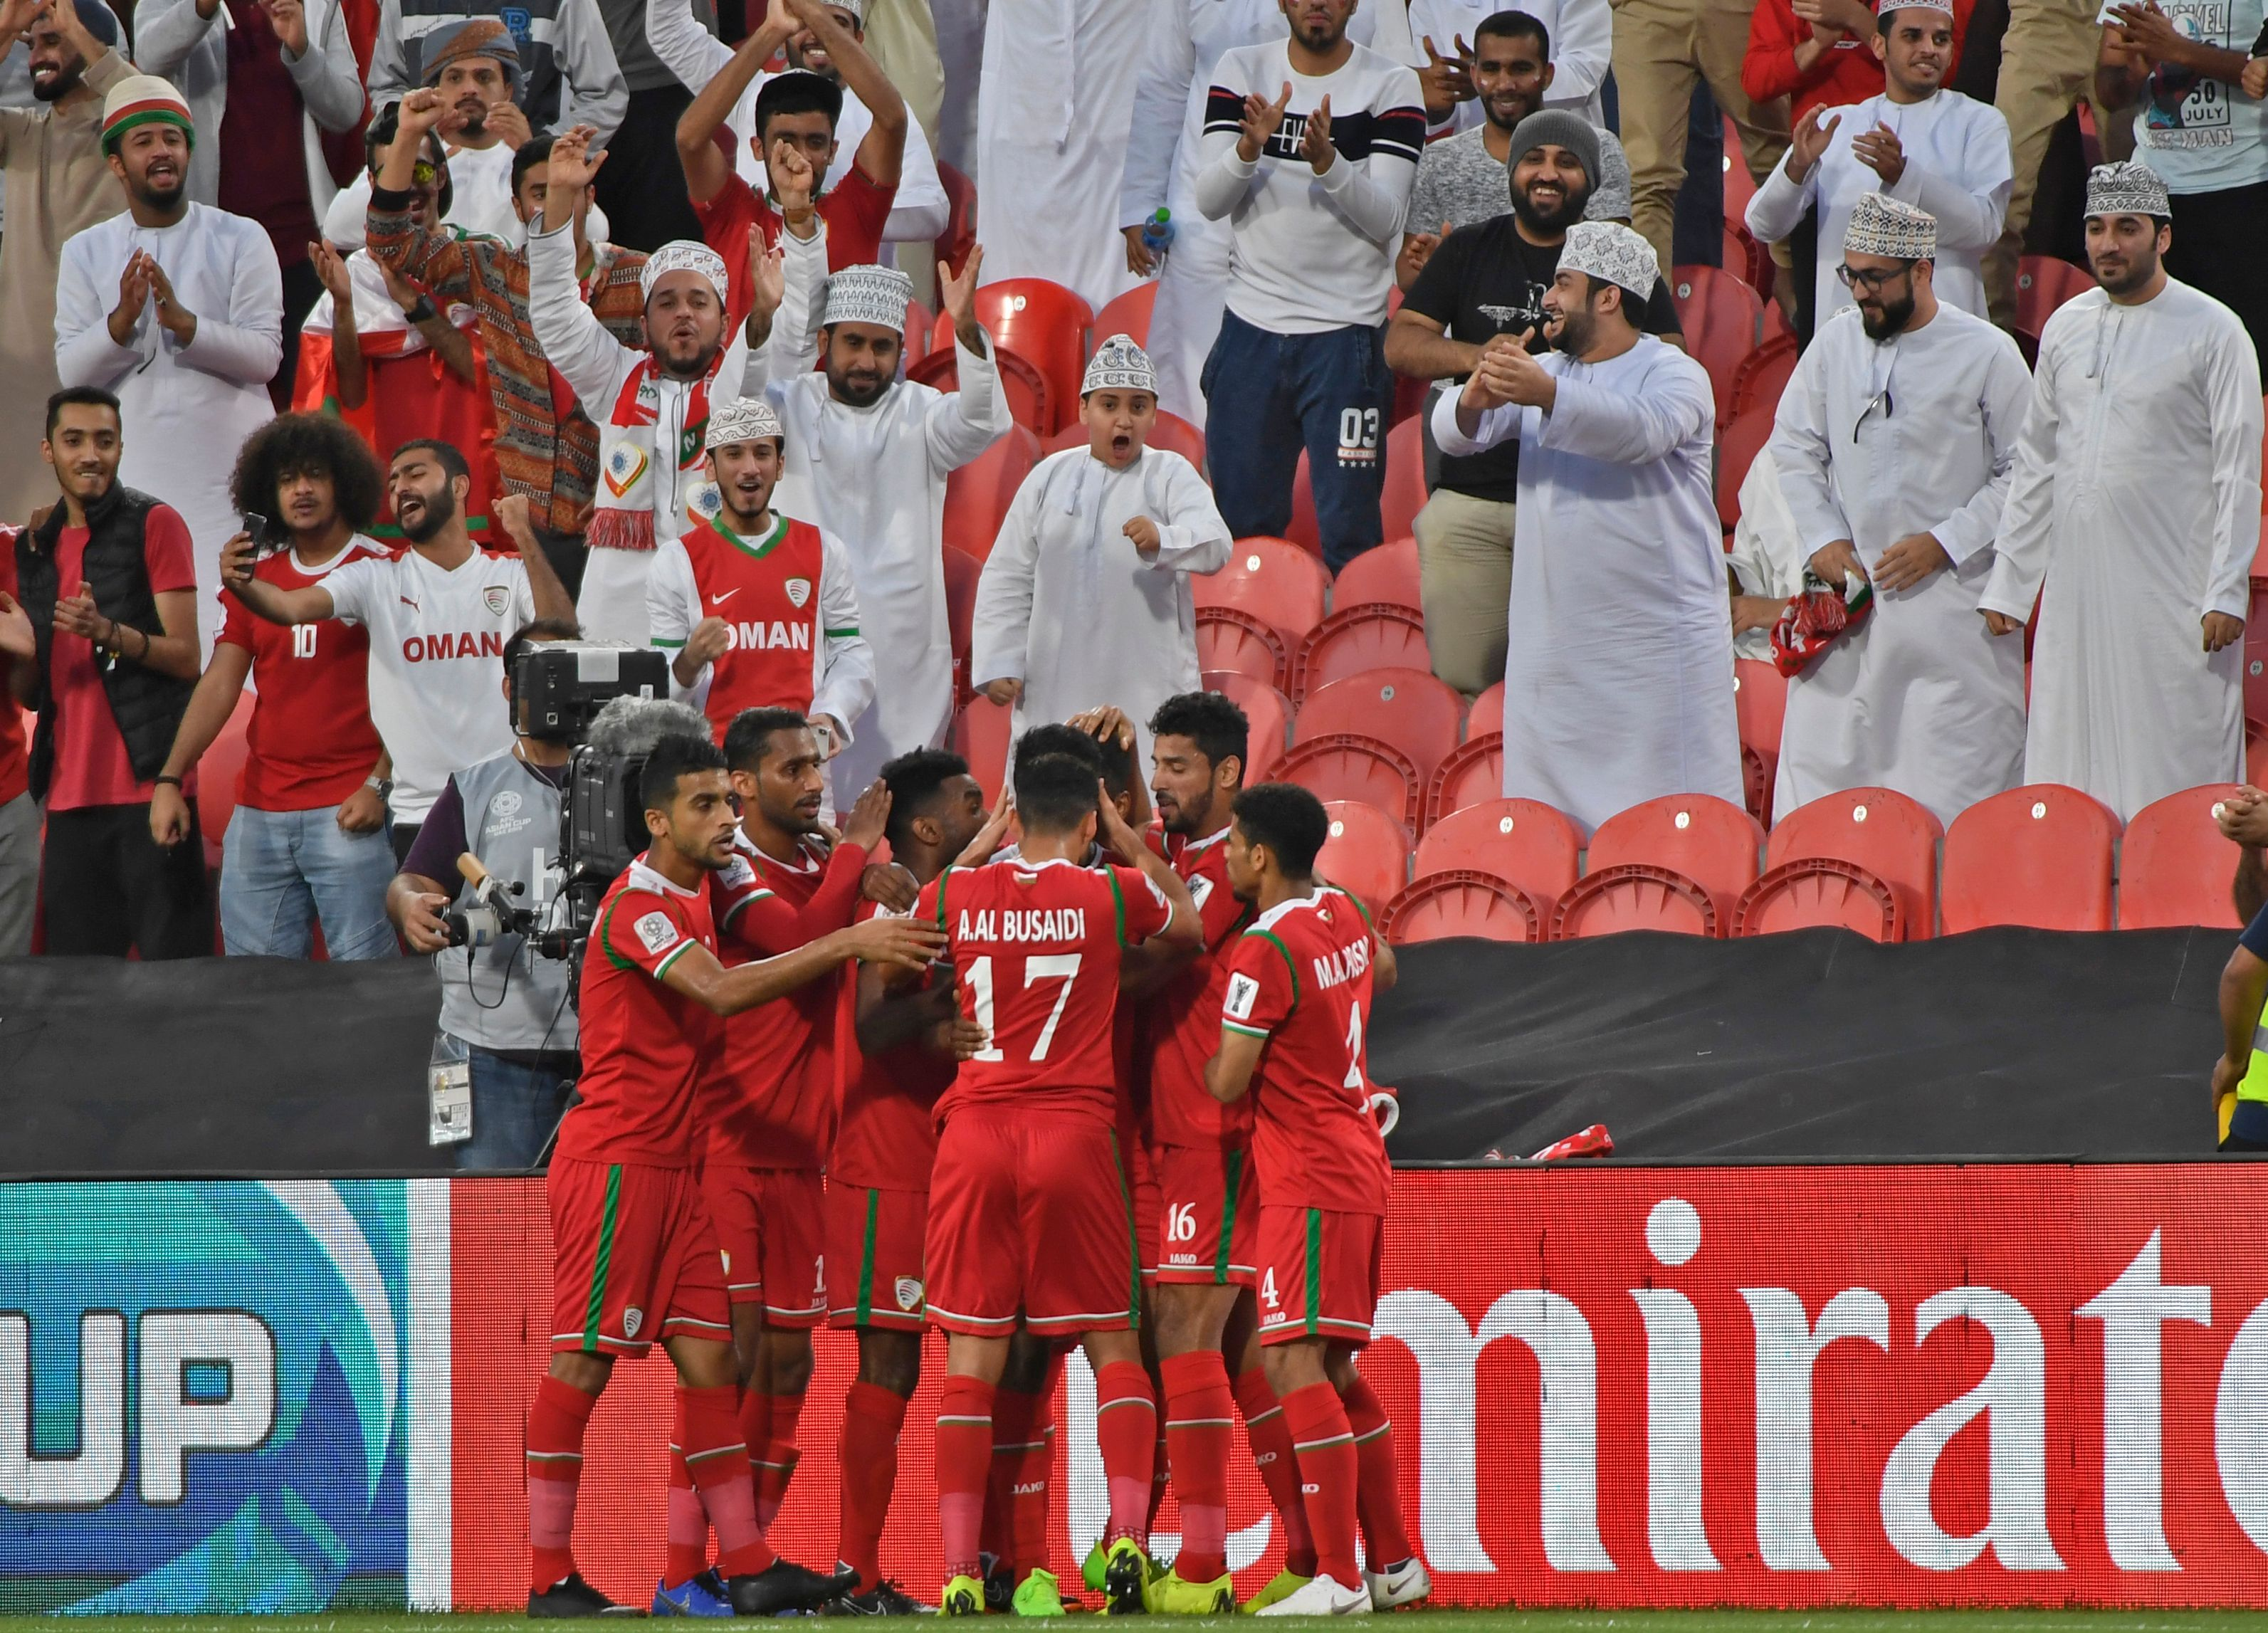 Oman's players celebrate their opening goal during the 2019 AFC Asian Cup group F football match between Oman and Turkmenistan at the Mohammed Bin Zayed Stadium in Abu Dhabi on January 17, 2019. (Photo by Khaled DESOUKI / AFP)